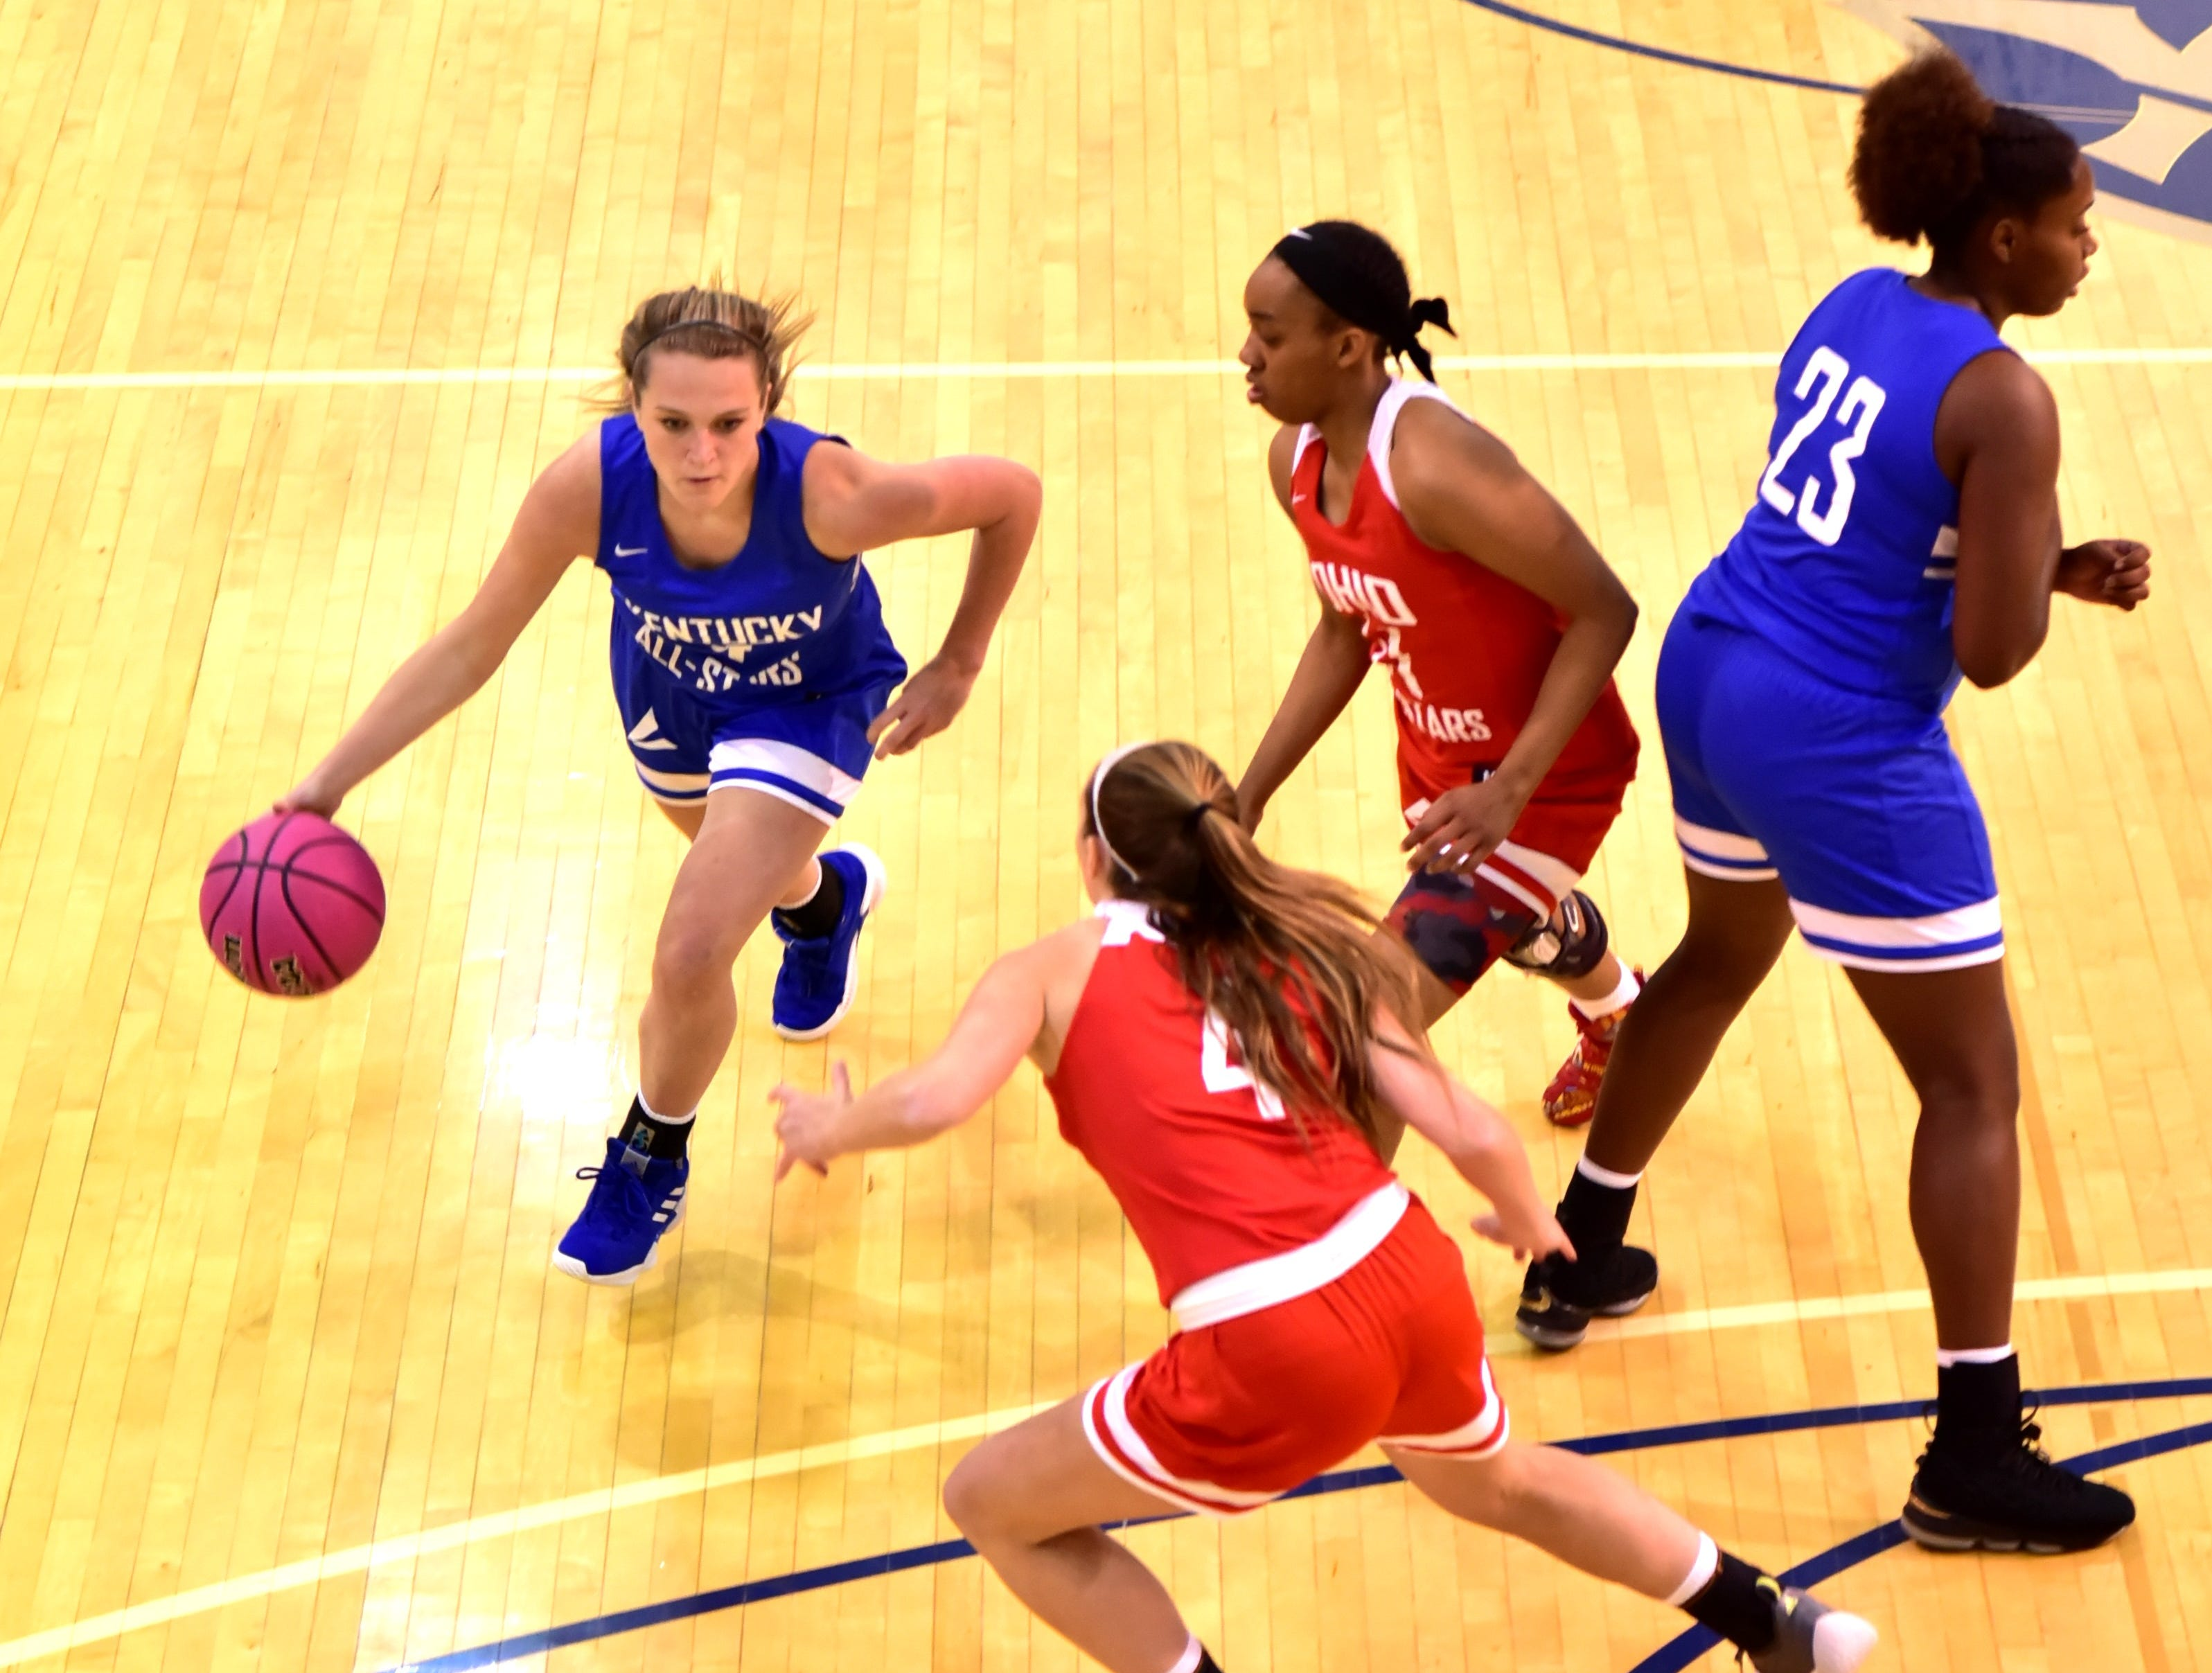 Courtney Hurst (with ball) of Conner dribbles by the Ohio girls team defense for the Kentucky girls team at the 28th Annual Ohio-Kentucky All Star Games played at Thomas More University, April 13, 2019